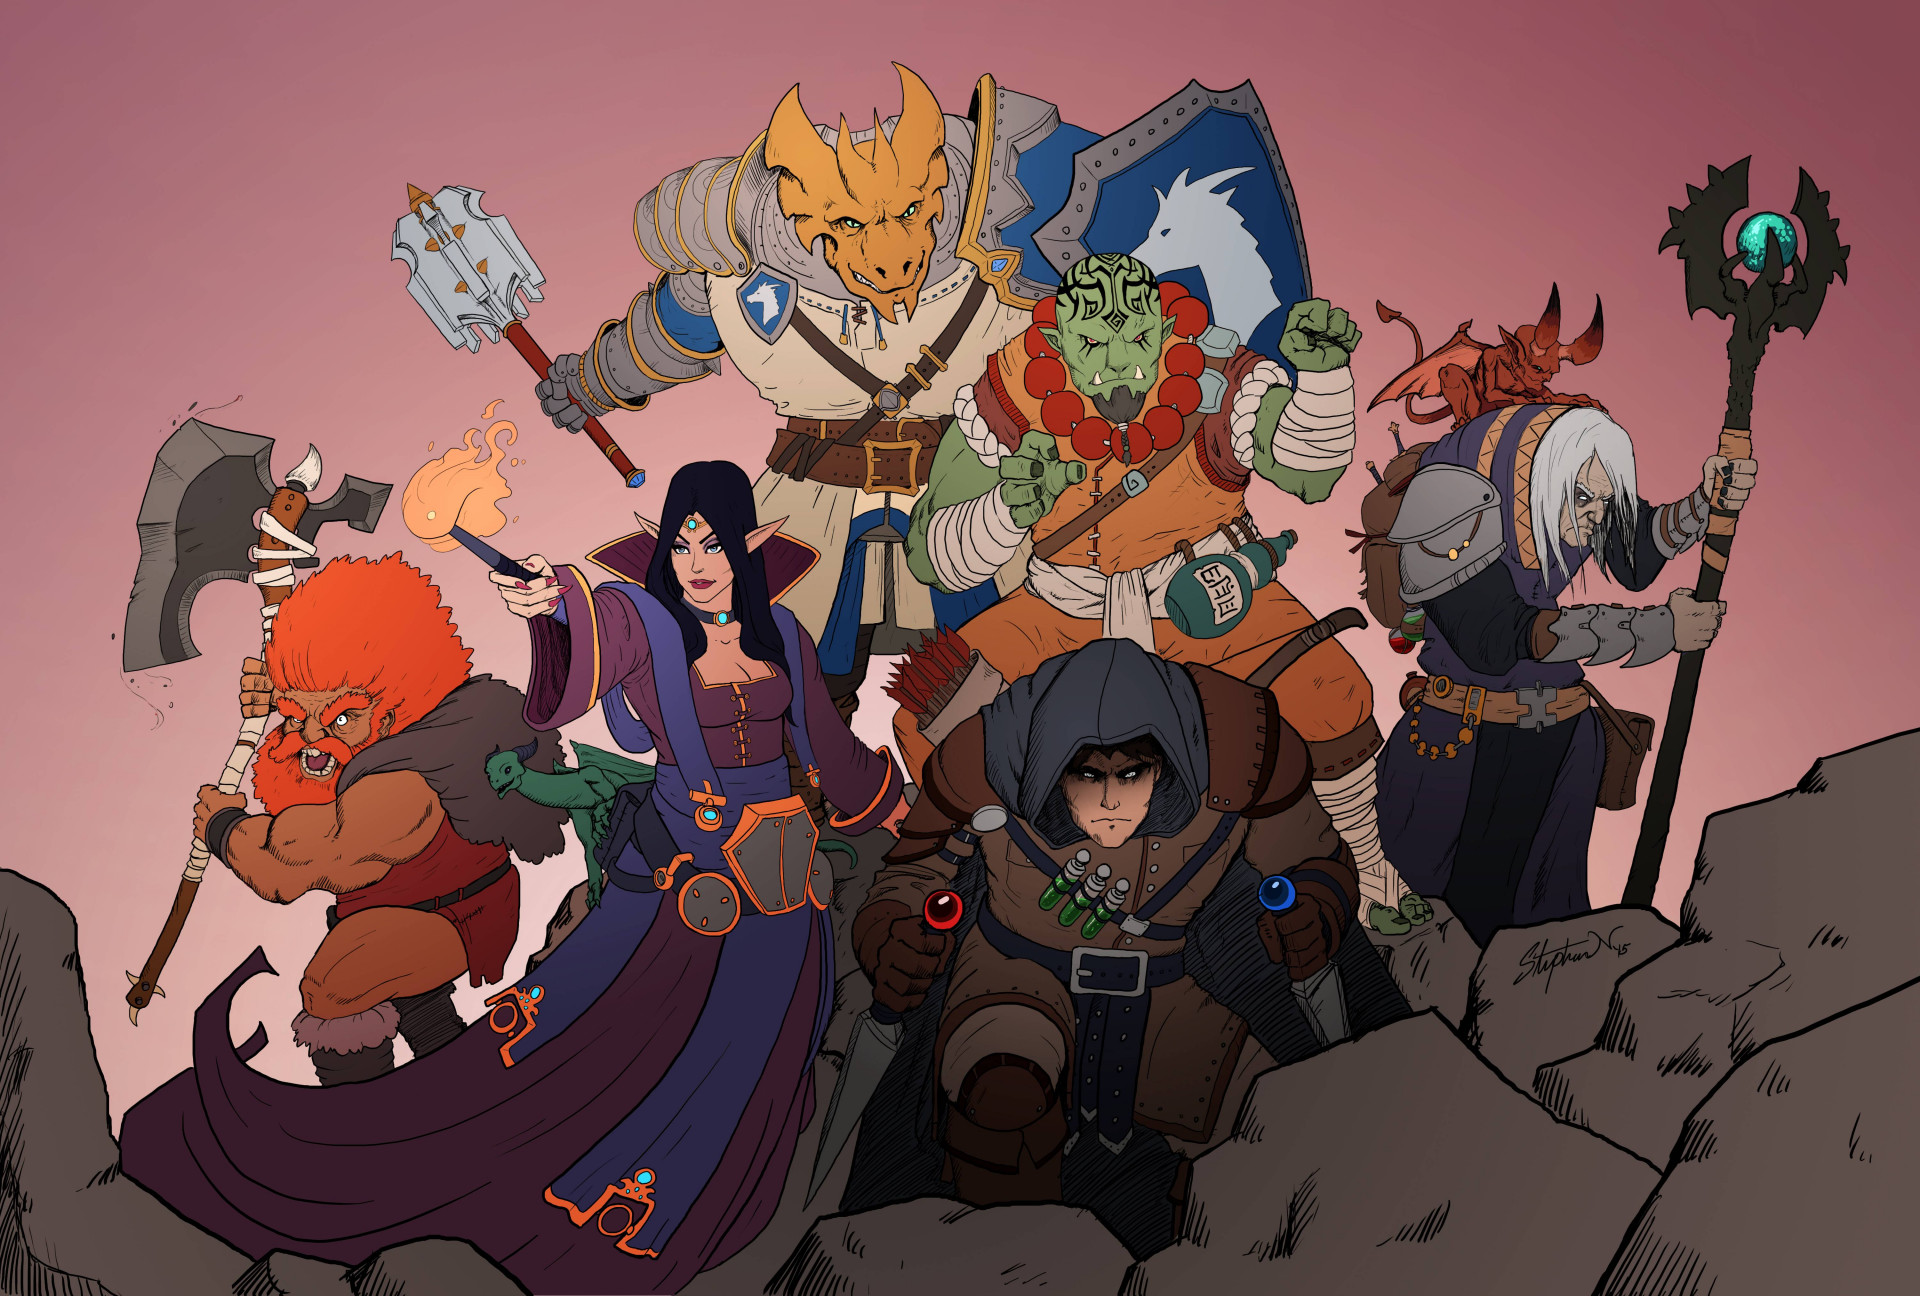 A classic D&D party stands at the ready. The dwarf has really orange hair. Like, really orange.